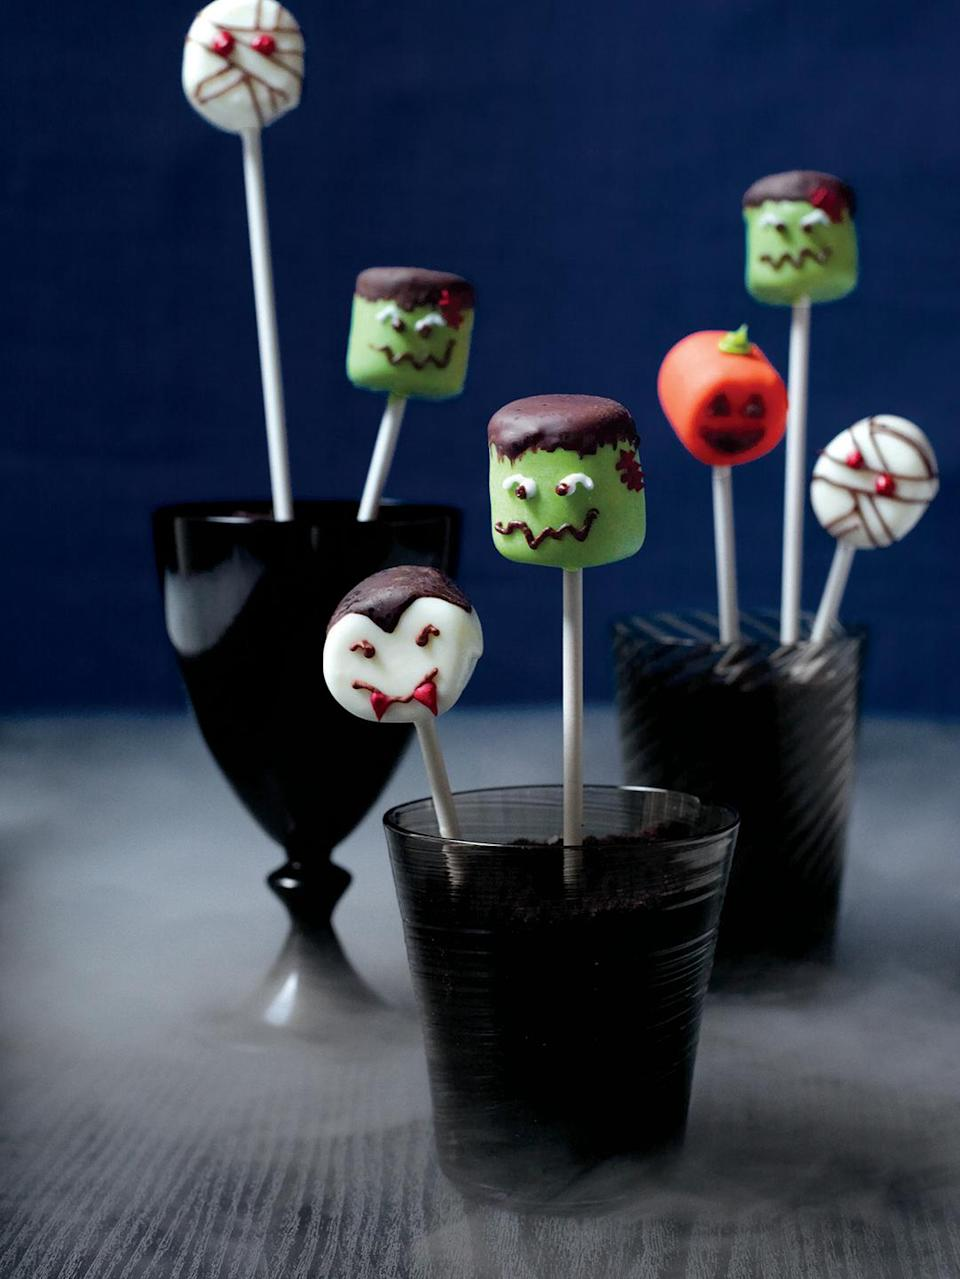 """<p>A few basic ingredients is all it takes to make these cute little monsters. </p><p><em><a href=""""https://www.womansday.com/food-recipes/food-drinks/recipes/a11873/marshmallow-heads-recipe-123439/"""" rel=""""nofollow noopener"""" target=""""_blank"""" data-ylk=""""slk:Get the Marshmallow Heads recipe."""" class=""""link rapid-noclick-resp""""><strong>Get the Marshmallow Heads recipe. </strong></a></em></p>"""